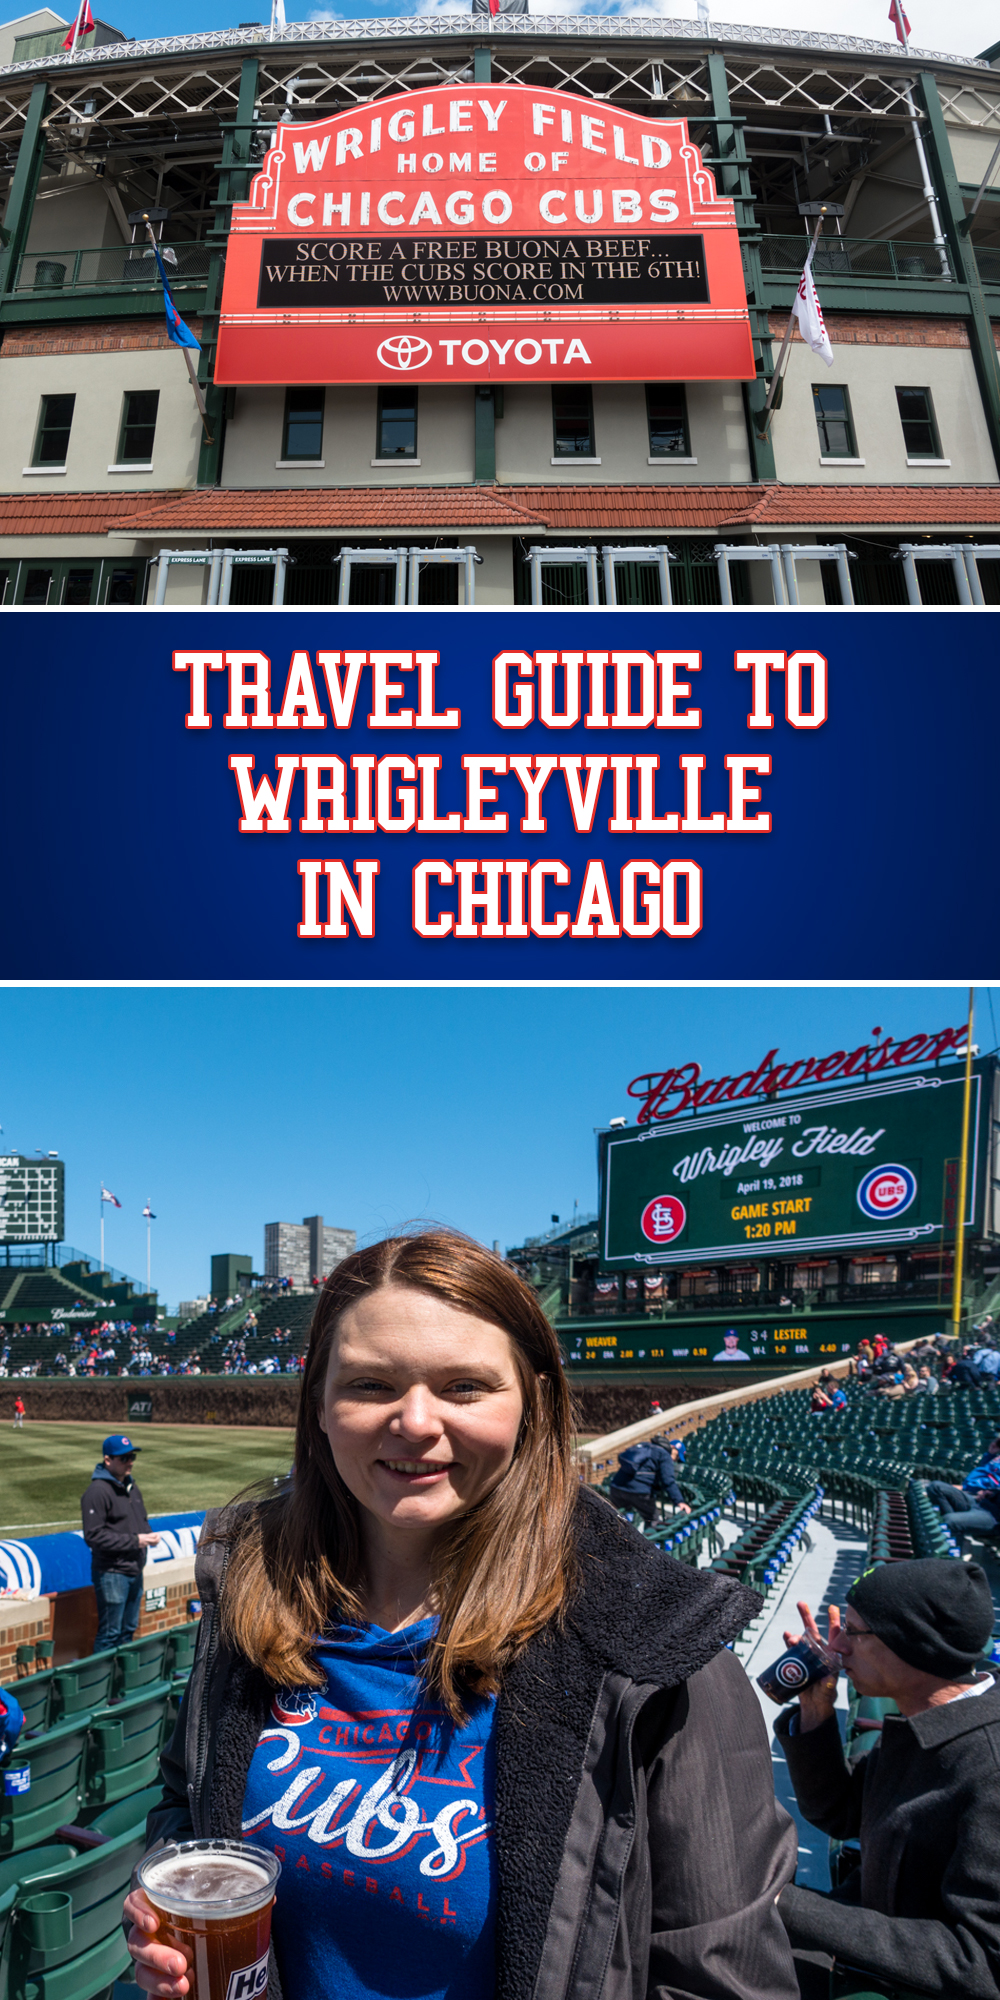 Travel Guide to Wrigleyville in Chicago. Tips for seeing your first Cubs game! #Chicago #Travel #Midwest #Cubs #Tips #Getaway #Summer #vacation #city